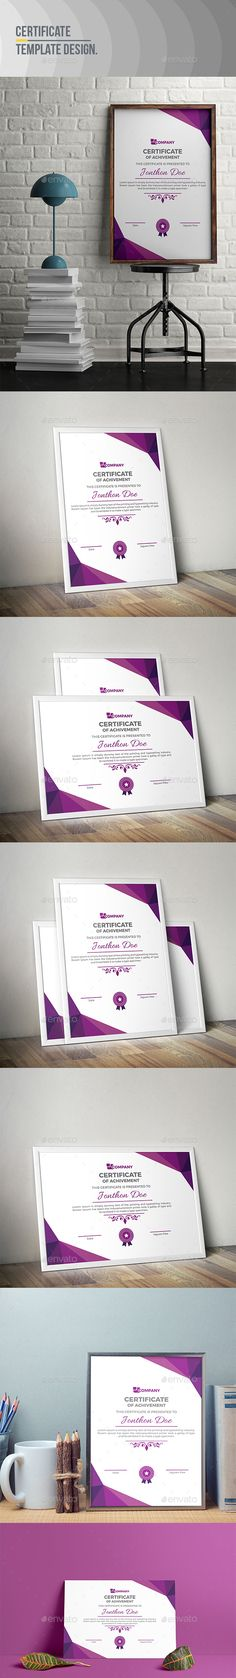 Certificate Template by Jaguars_Paw Certificate Design, Certificate Templates, Stencil Templates, Print Templates, Design Templates, Stationery Templates, Stationery Design, Certificate Of Appreciation, Award Certificates